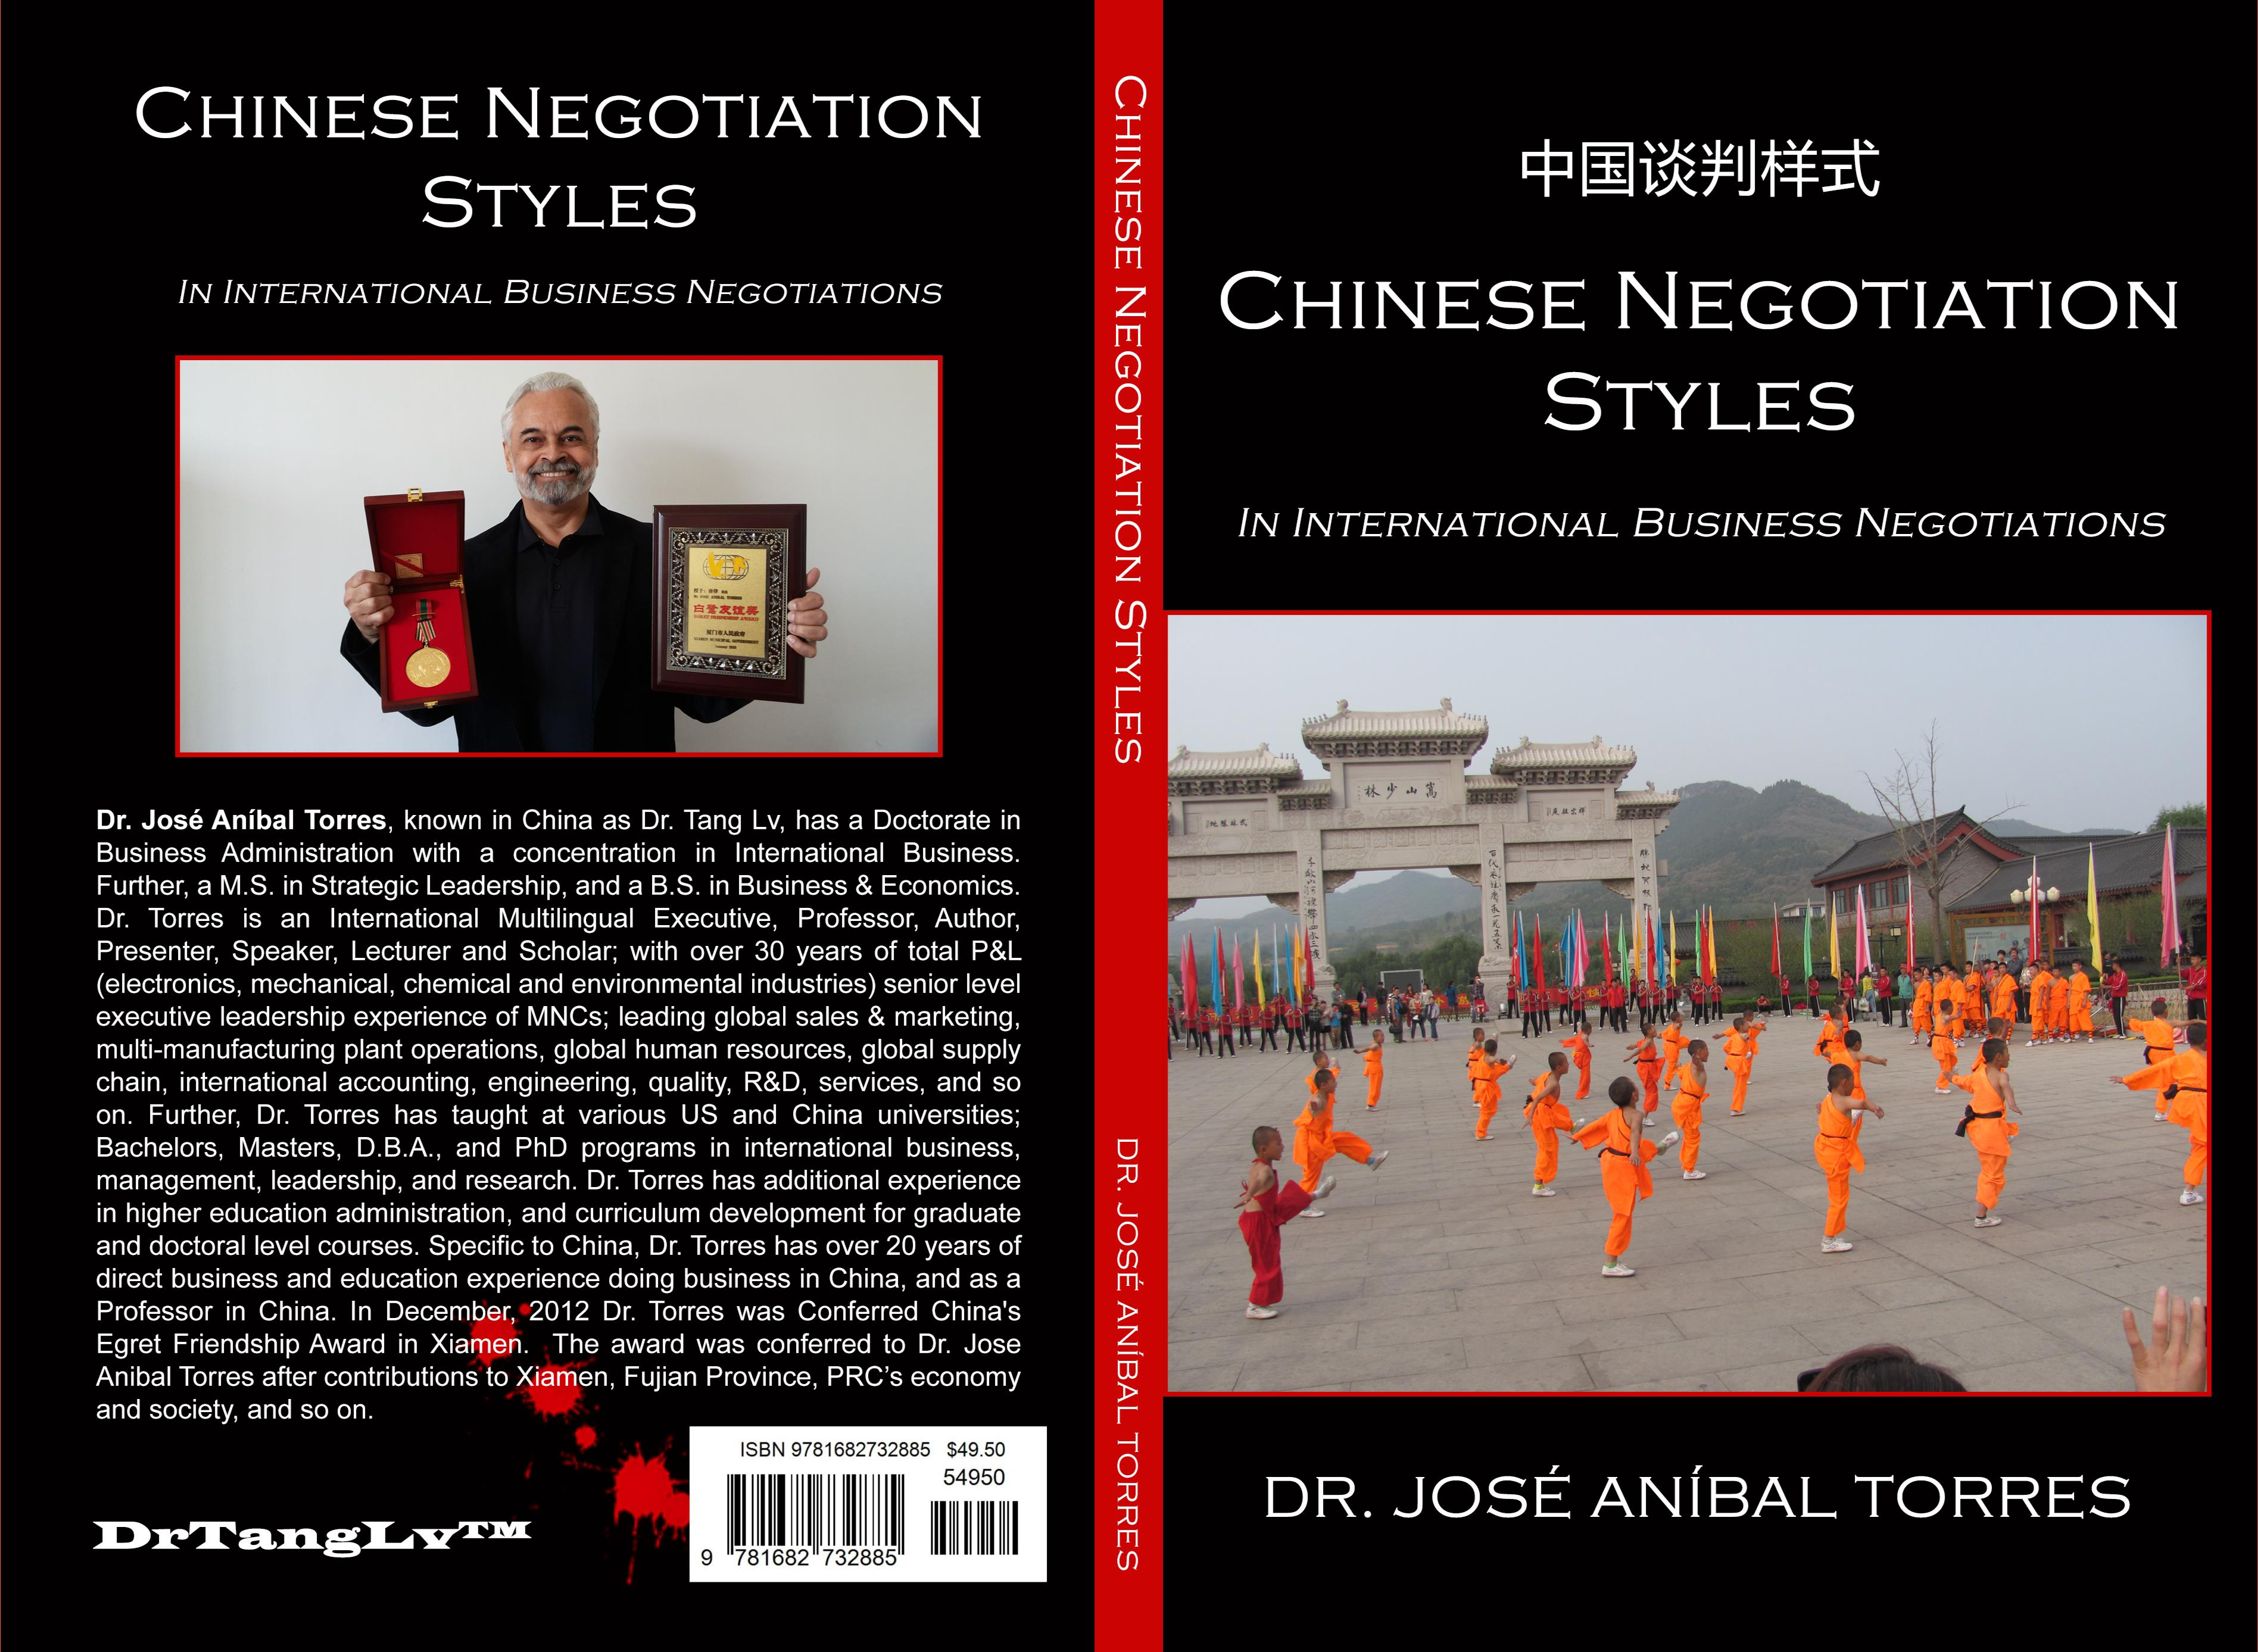 Chinese Negotiation Styles In International Business Negotiations cover image